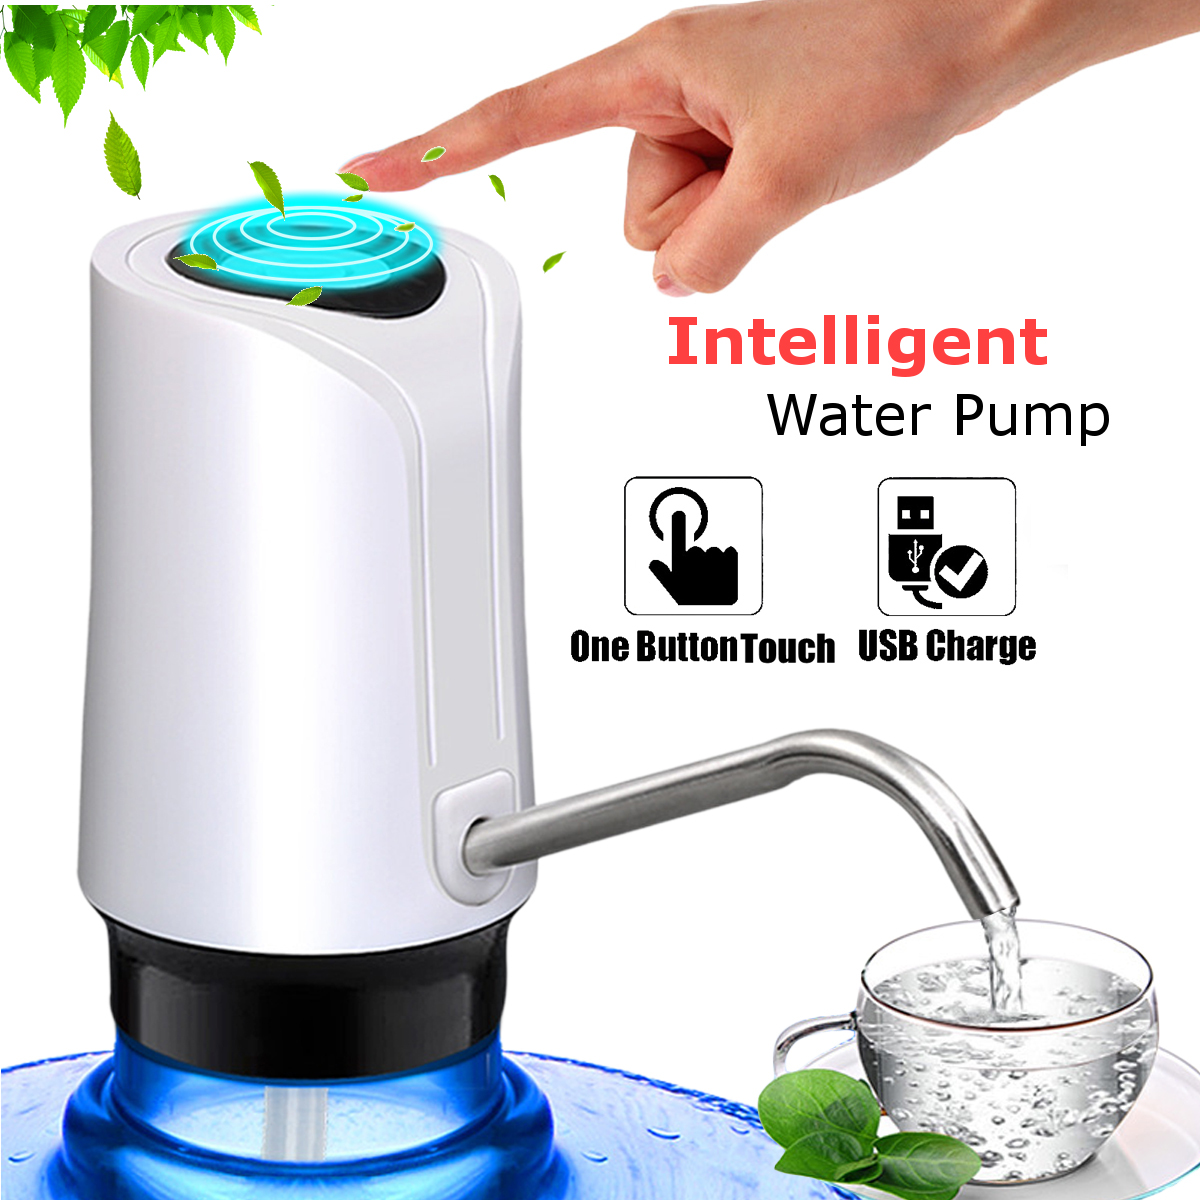 USB Wireless Smart Electric Water Pump Dispenser Bottle Portable Beverage Suction Automatic Suction Pump For Home Travel